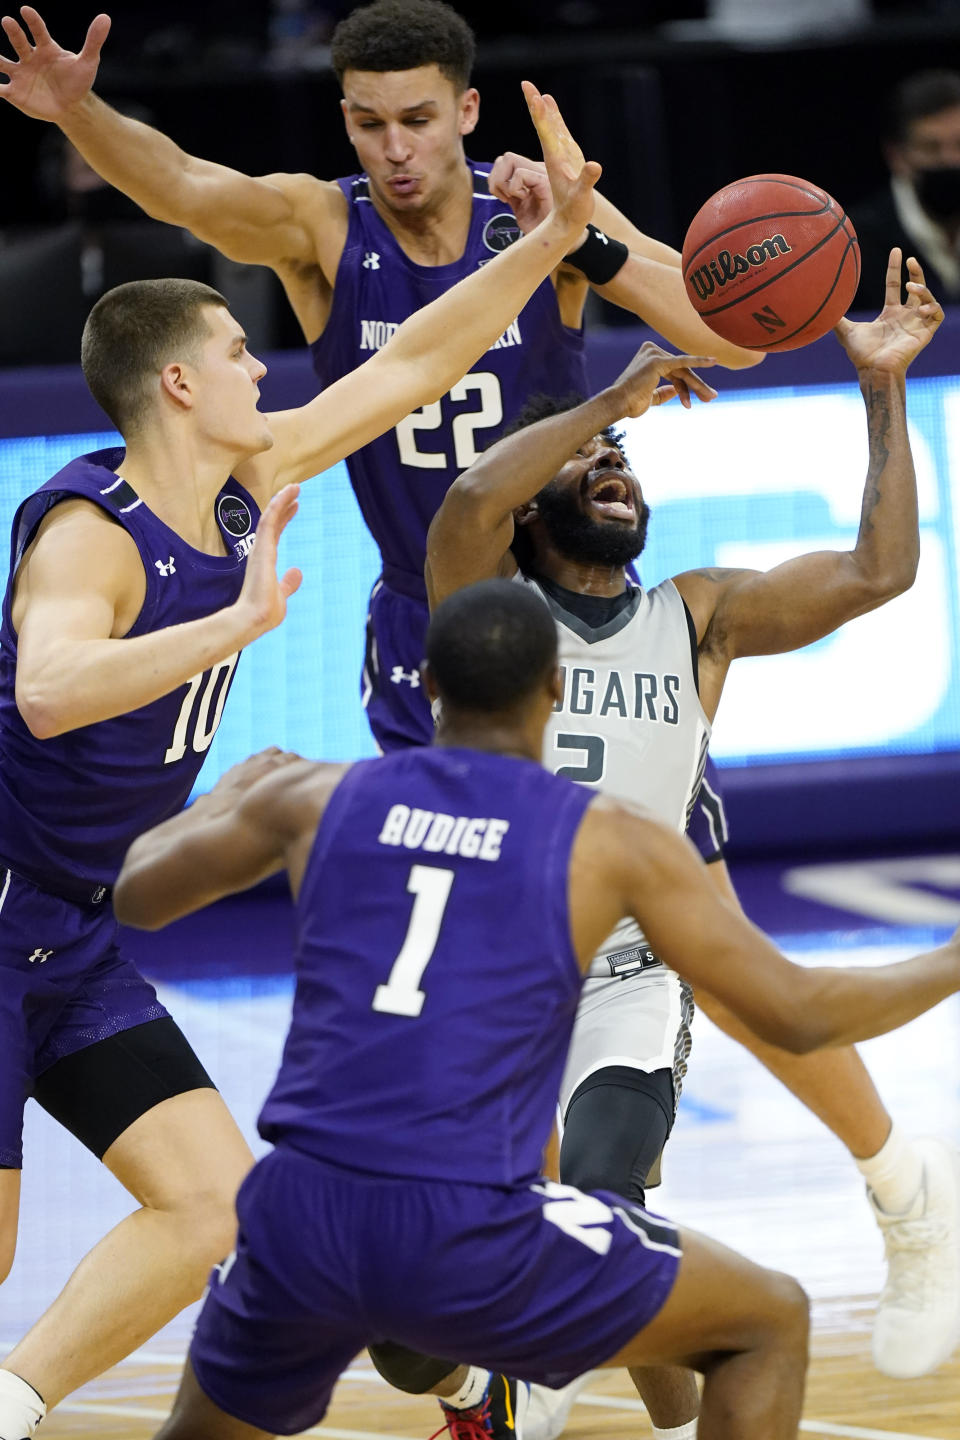 Chicago State guard Levelle Zeigler (2) can't control the ball as Northwestern forward Pete Nance (22), forward Miller Kopp, left, and guard Chase Audige guard during the first half of an NCAA college basketball game in Evanston, Ill., Saturday, Dec. 5, 2020. (AP Photo/Nam Y. Huh)